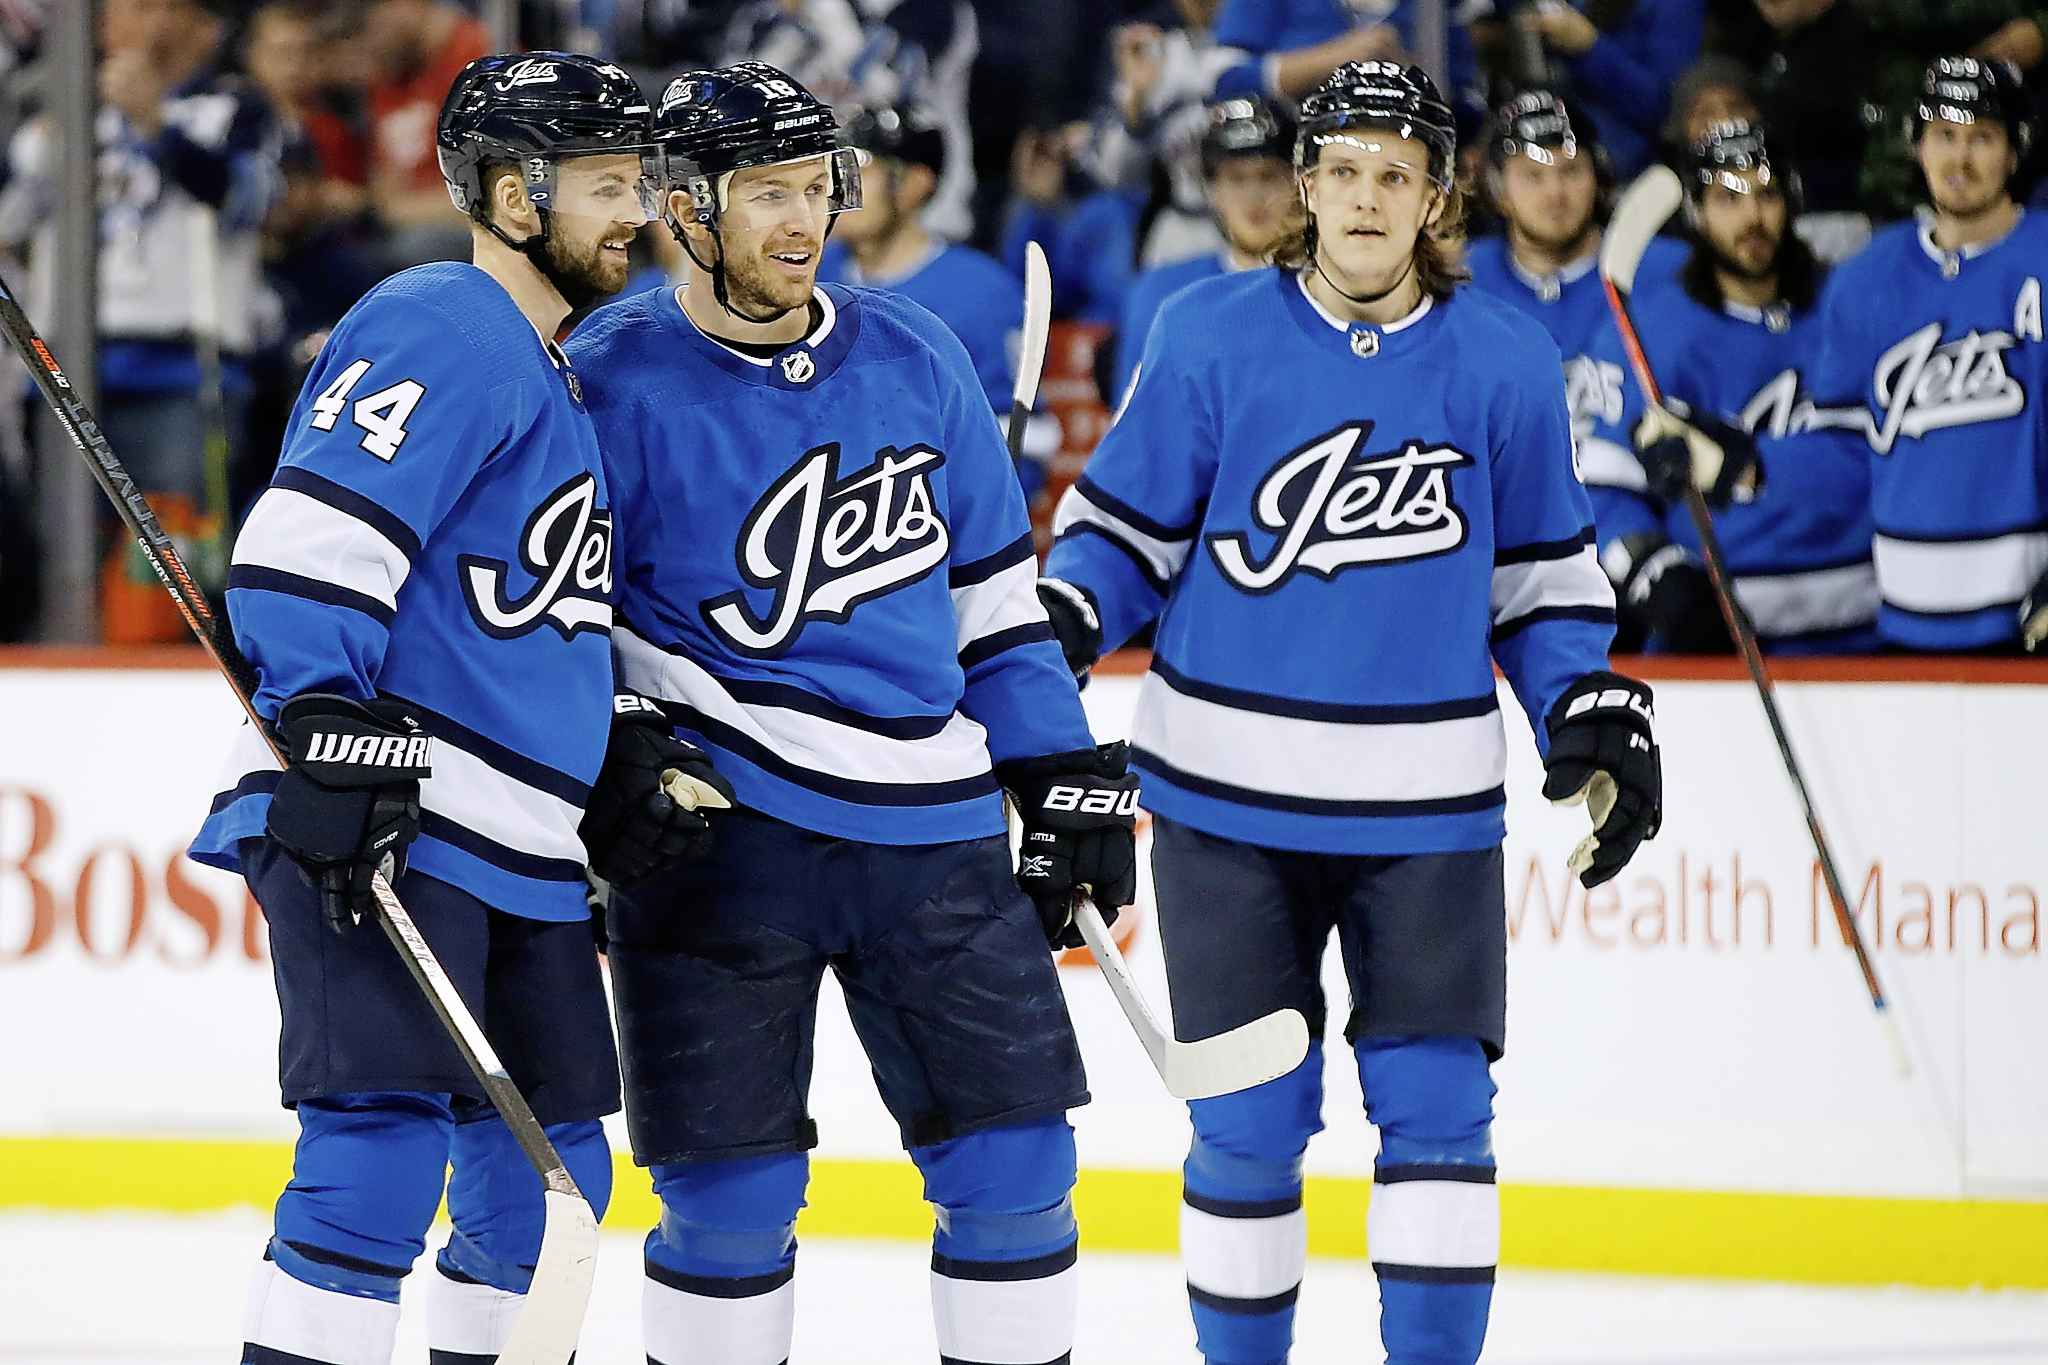 Winnipeg Jets' Josh Morrissey, Bryan Little and Sami Niku celebrate Little's goal against the Detroit Red Wings Friday. The point was Little's 500th in his NHL career, all of which came playing for the Atlanta Thrashers/Winnipeg Jets franchise.